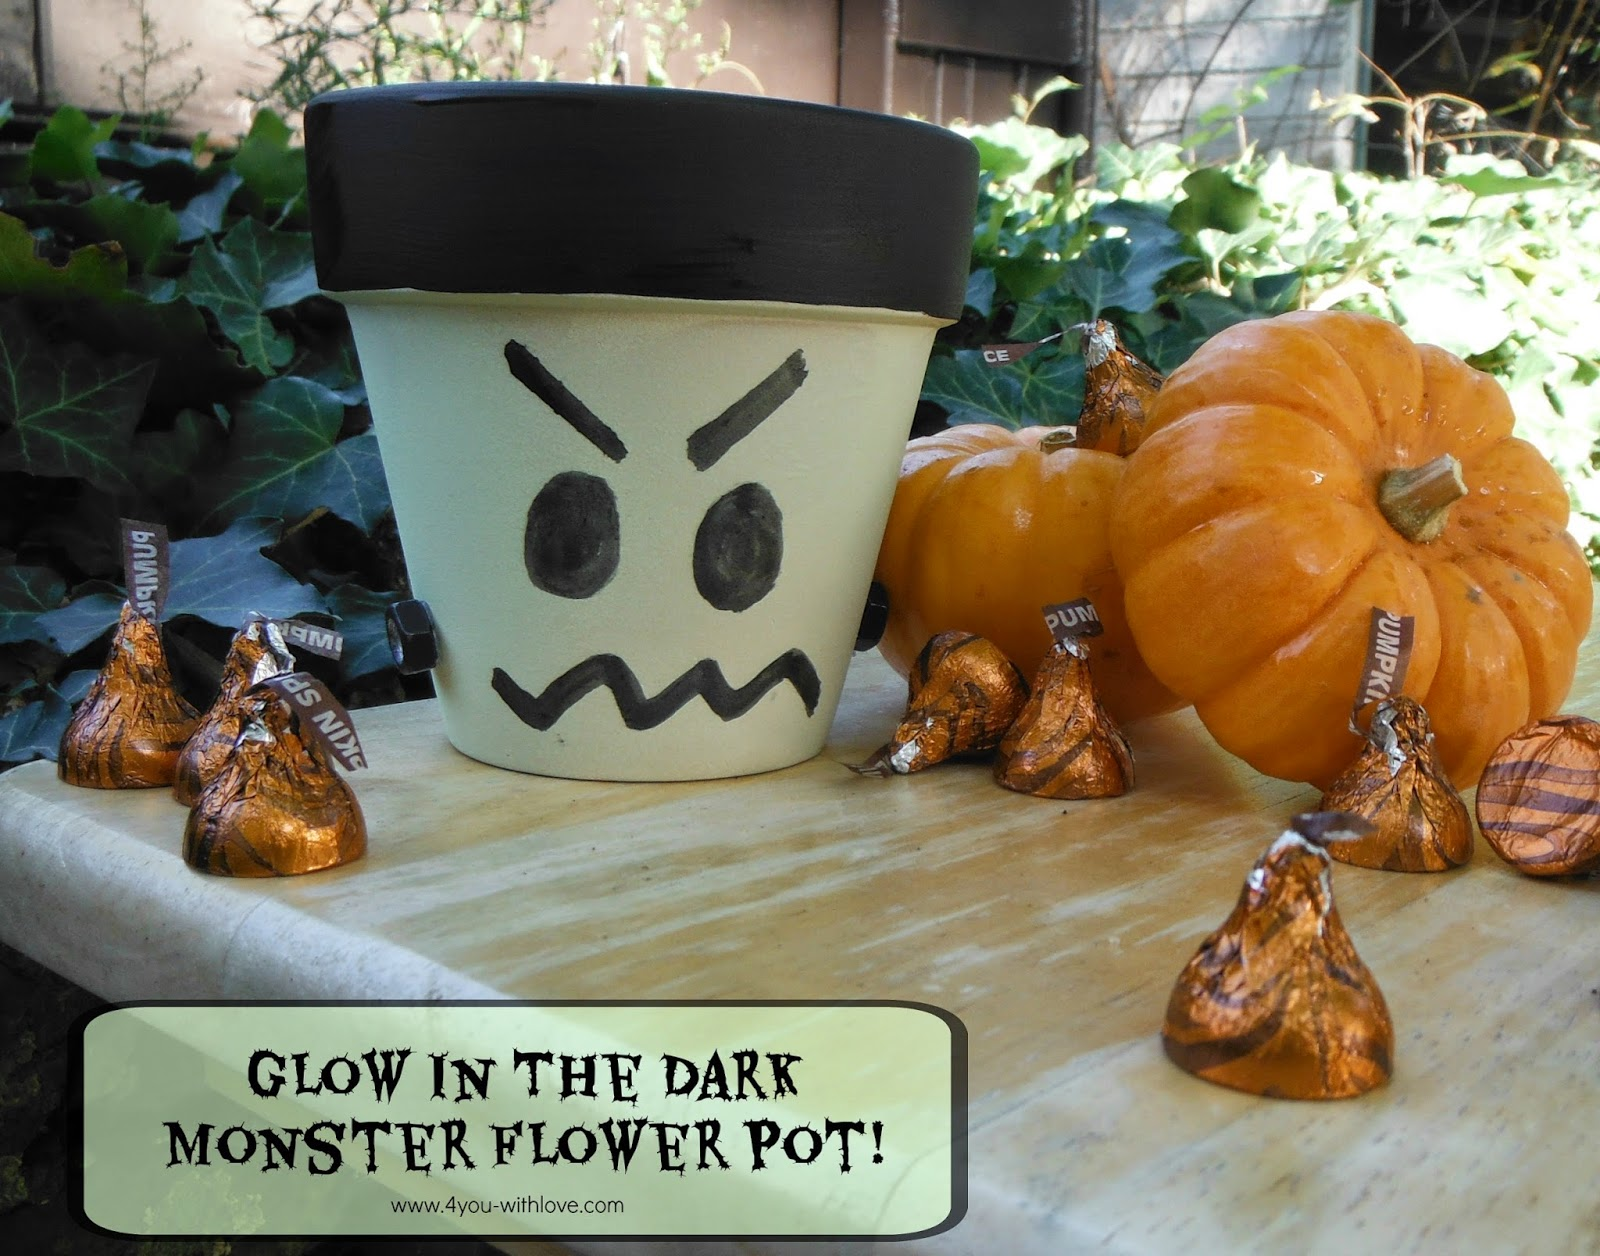 Glow in the Dark Monster Flower Pot & Glow In The Dark Monster Flower Pot (#CraftLightning) - 4 You With Love